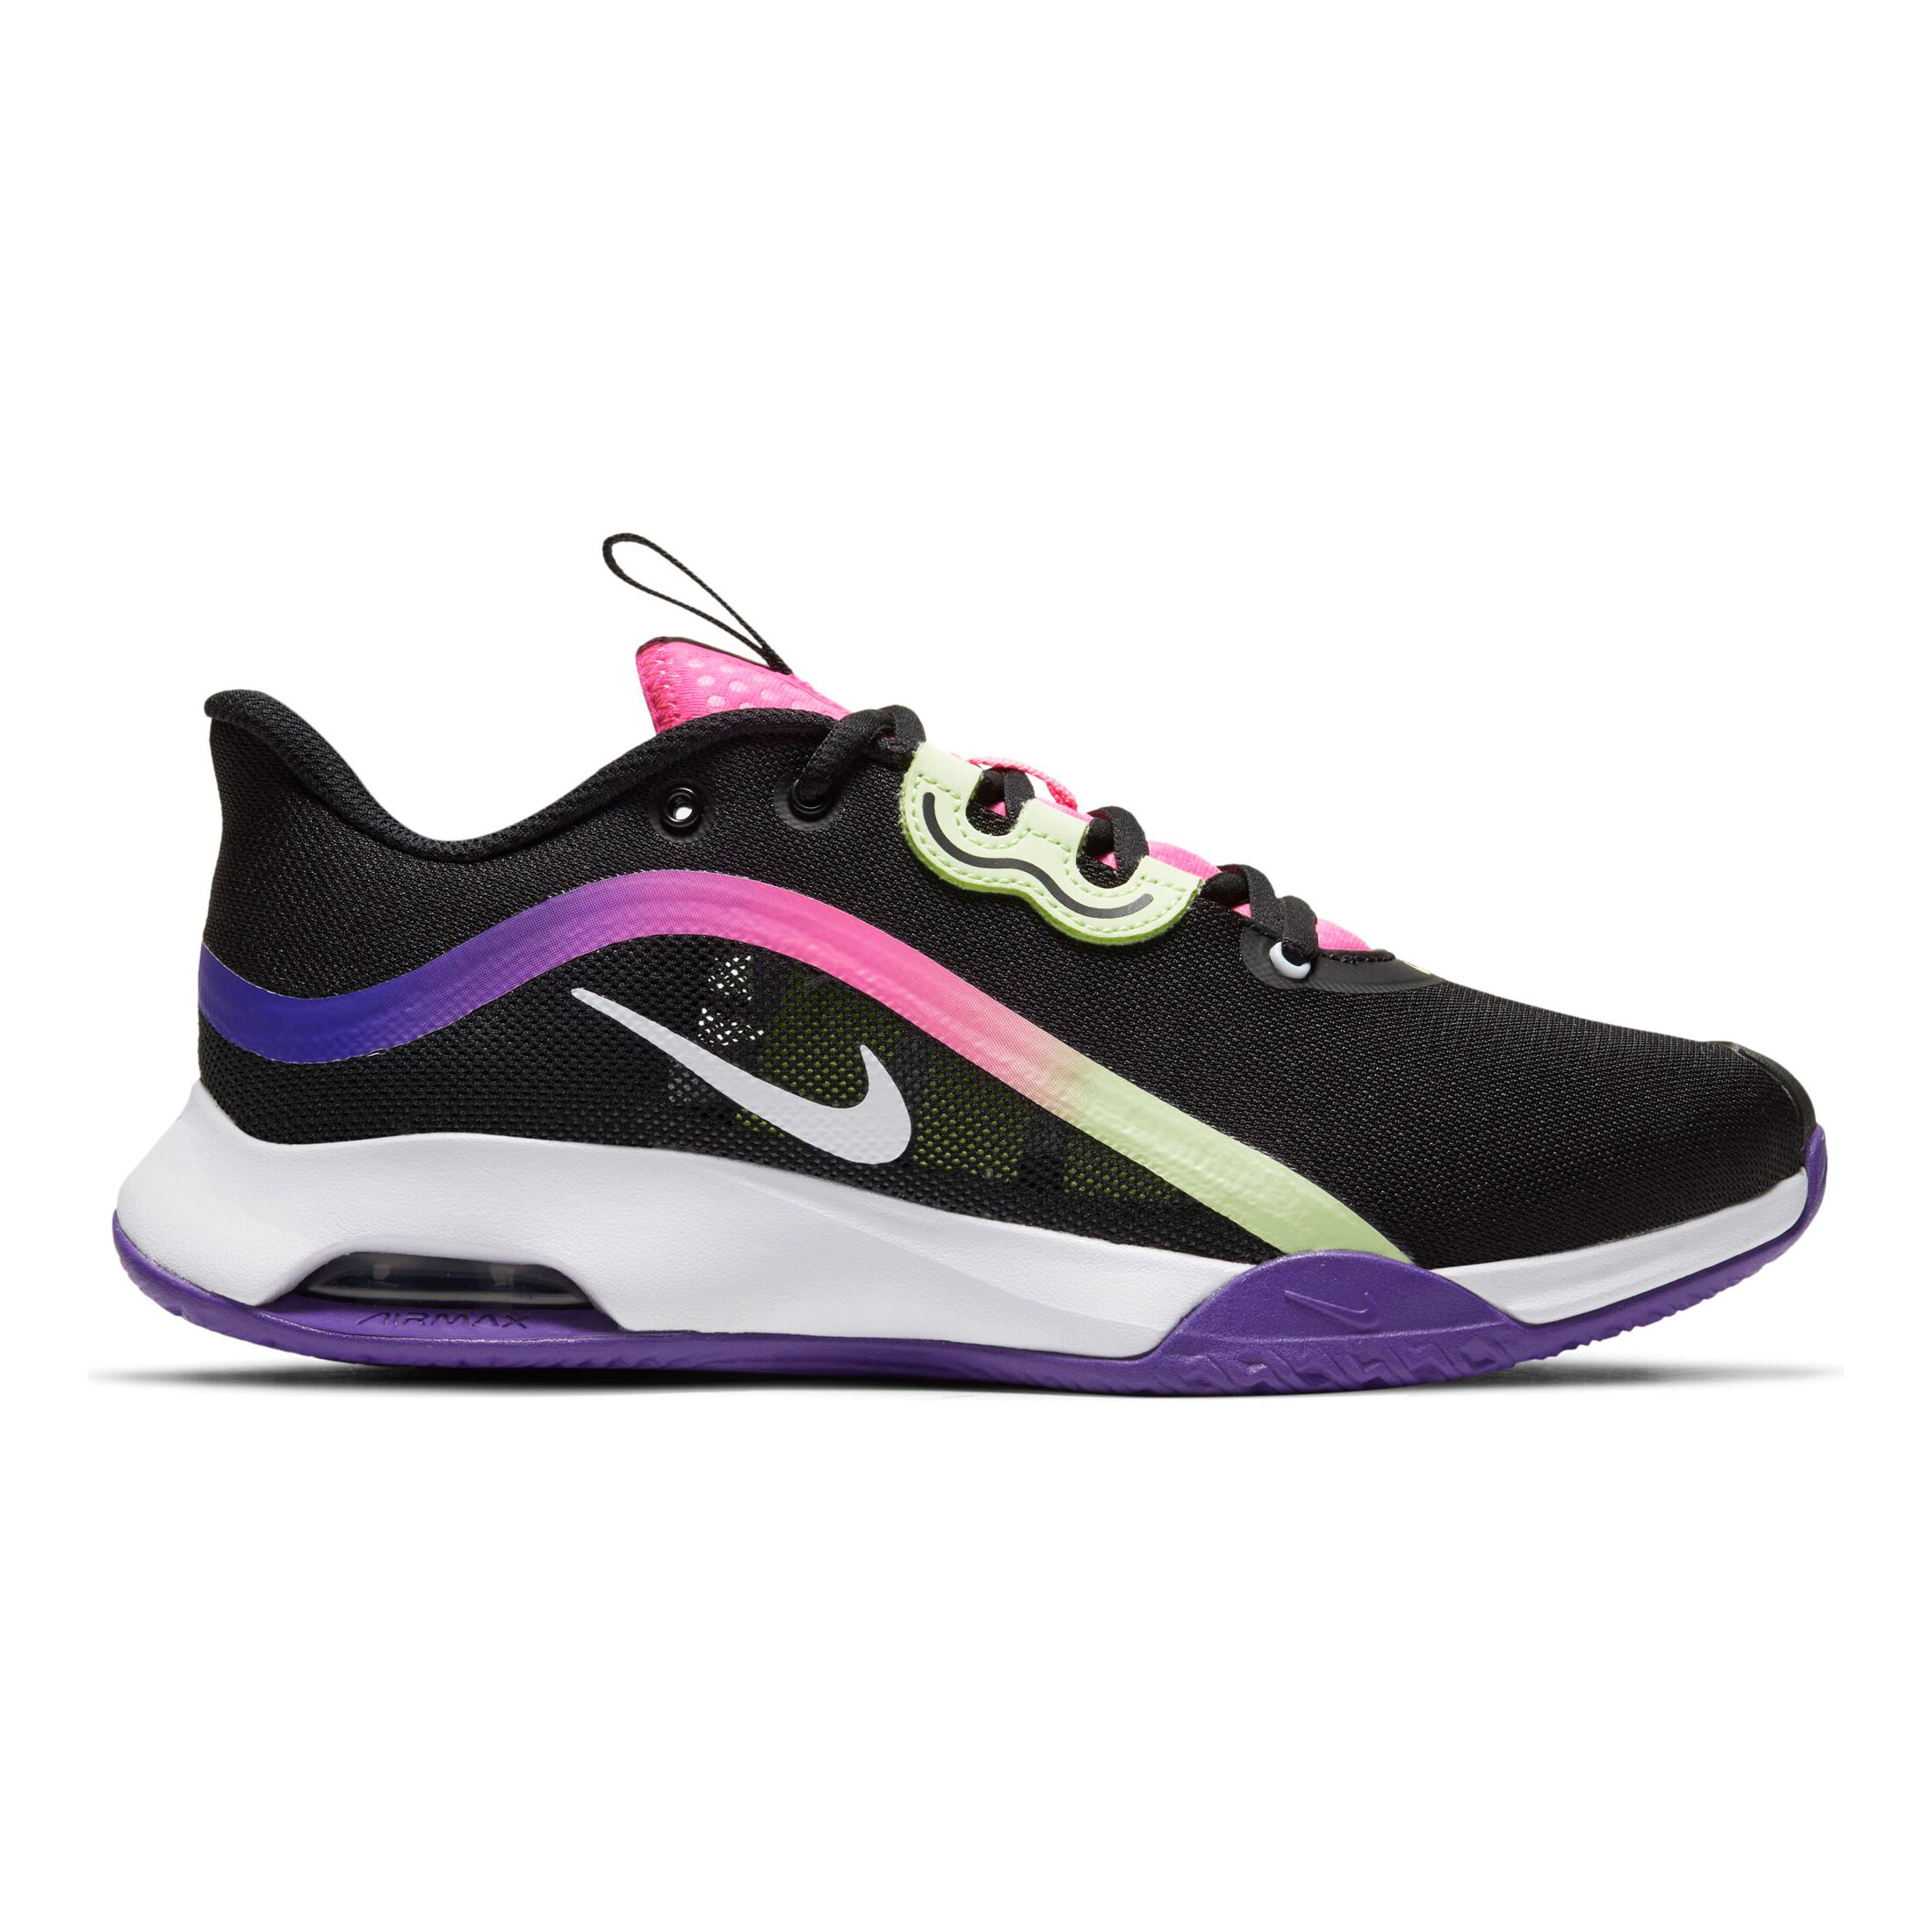 buy Nike Air Max Volley All Court Shoe Women - Black ...